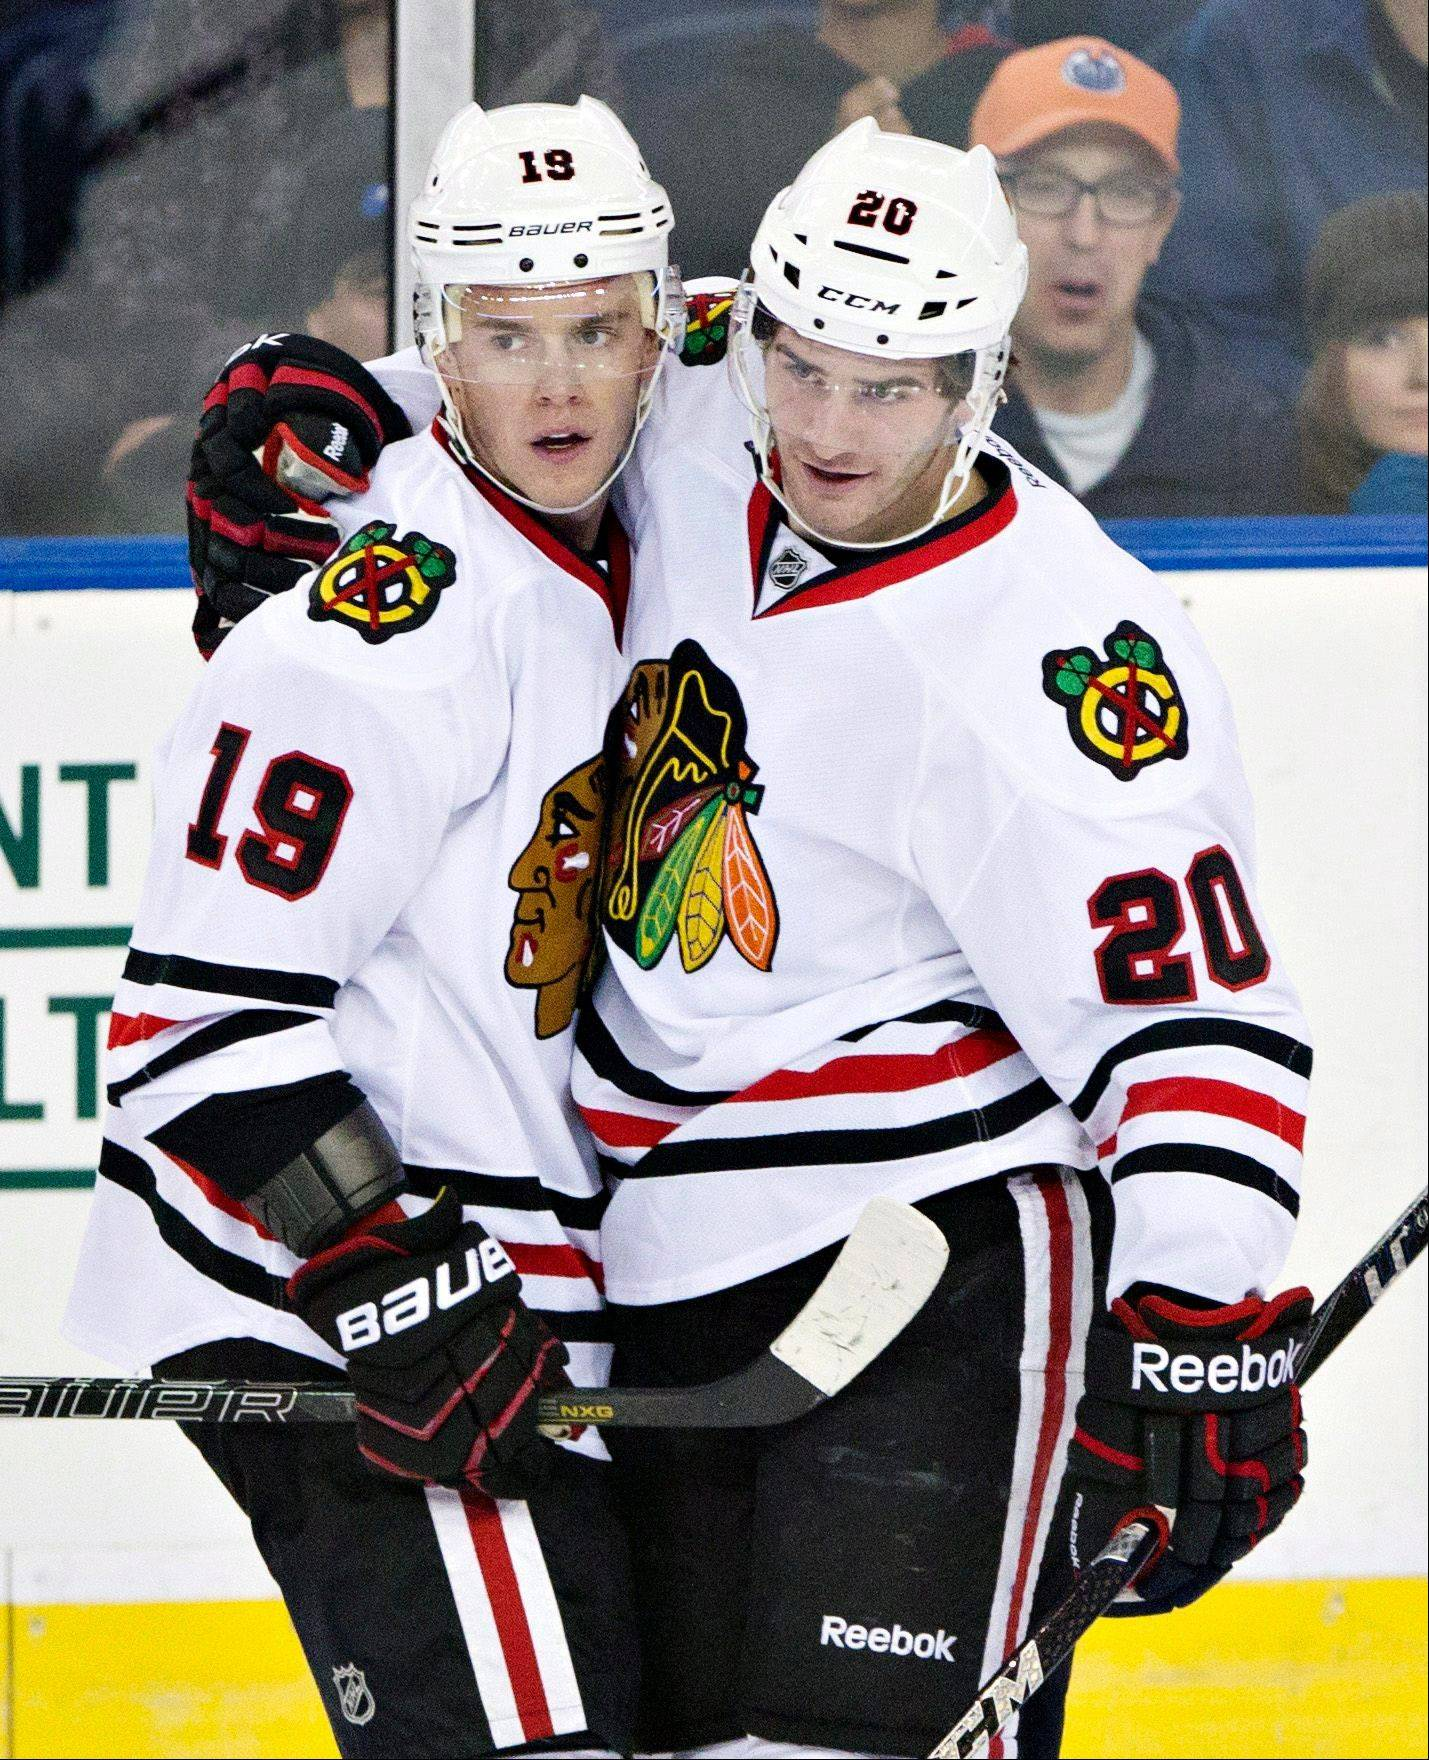 Jonathan Toews (19) and Brandon Saad celebrate a goal against Edmonton on Wednesday, April 24, 2013.